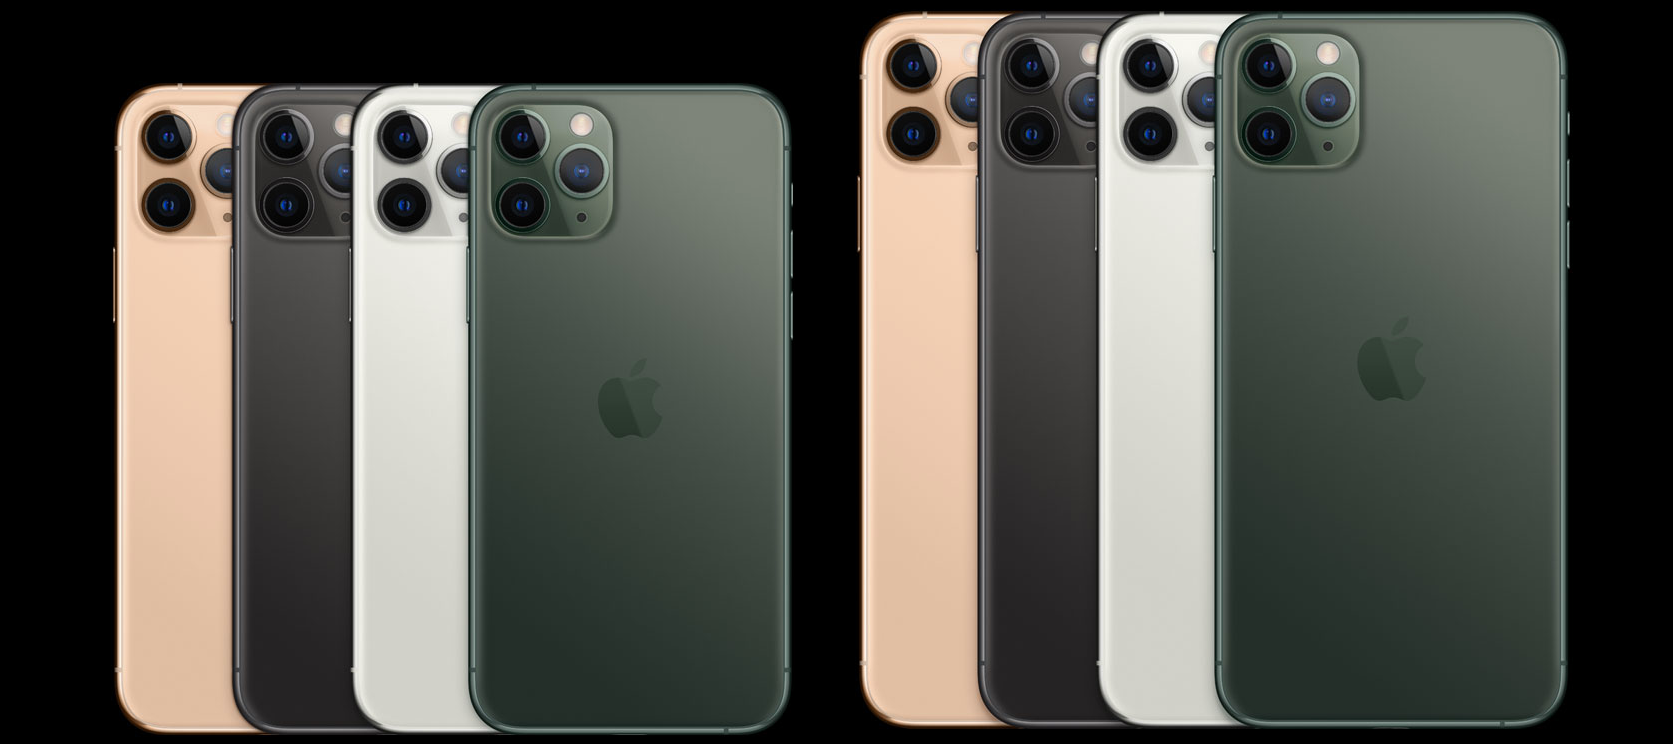 Apple Iphone 11, Iphone 11 Pro in Iphone 11 Pro Max